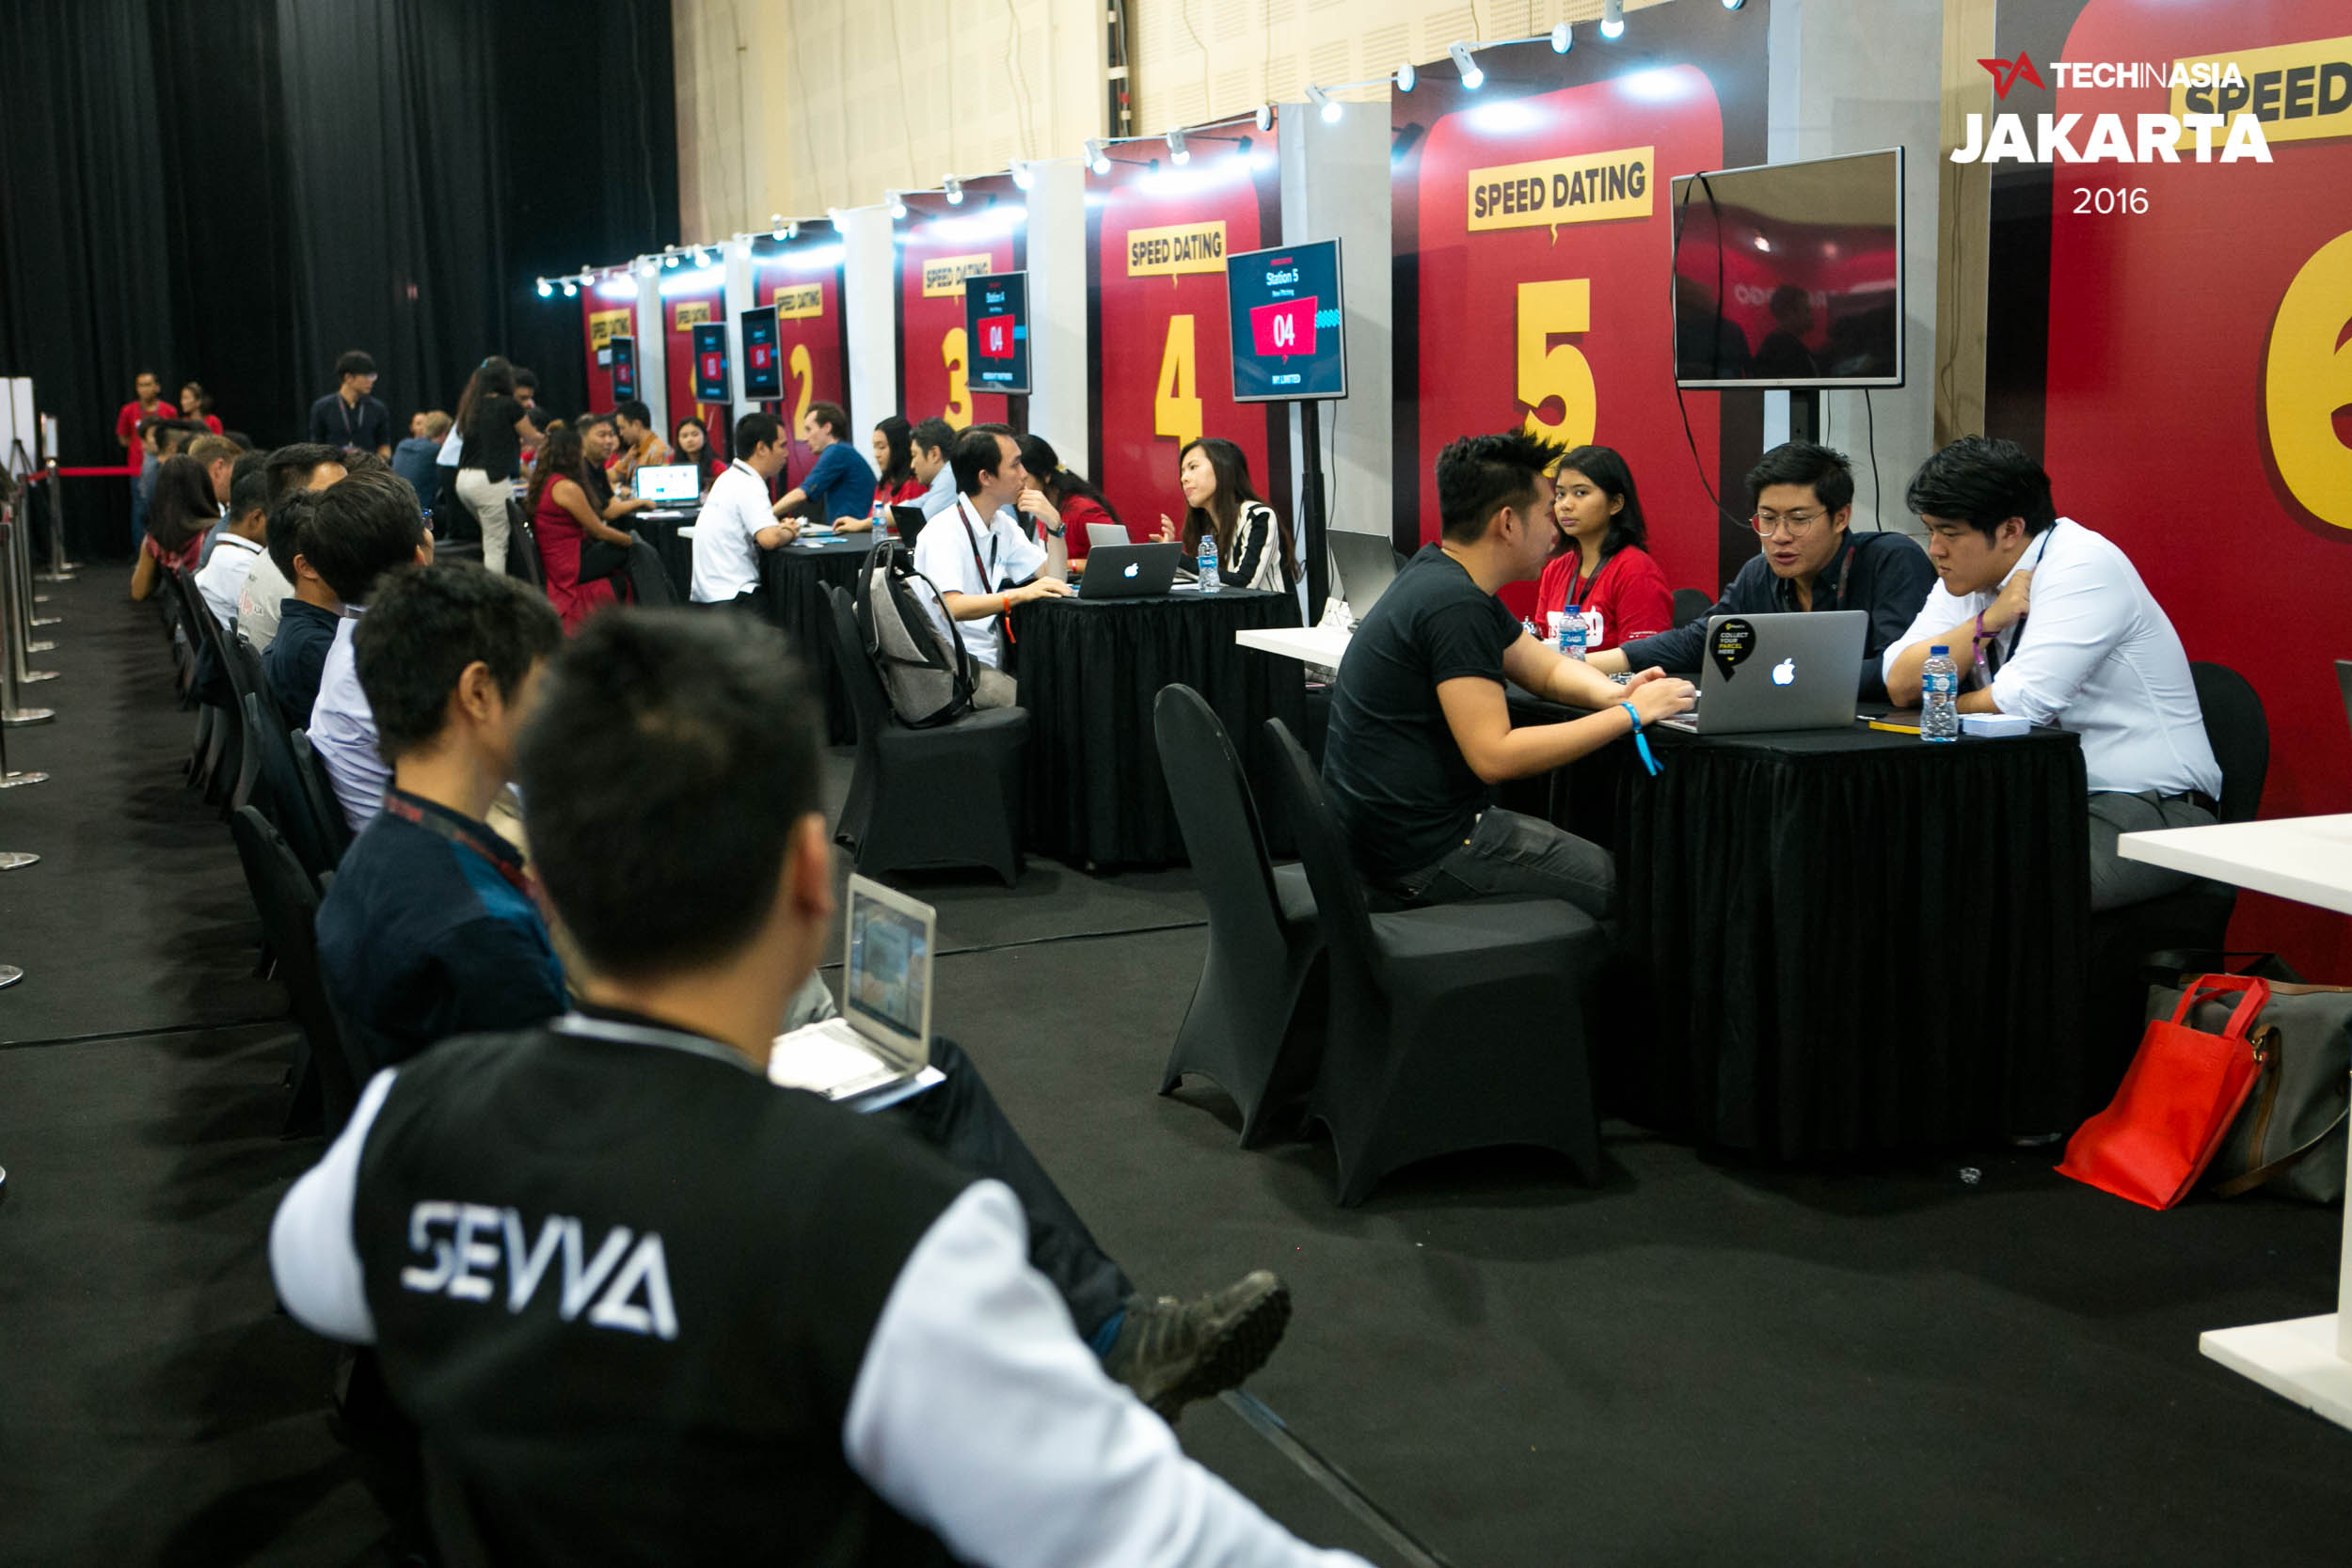 tech in asia jakarta speed dating Media a is w15) (yc asia in tech events, communities, tech asia's for platform jobs and speed dating jakarta dating a married man who is separated.